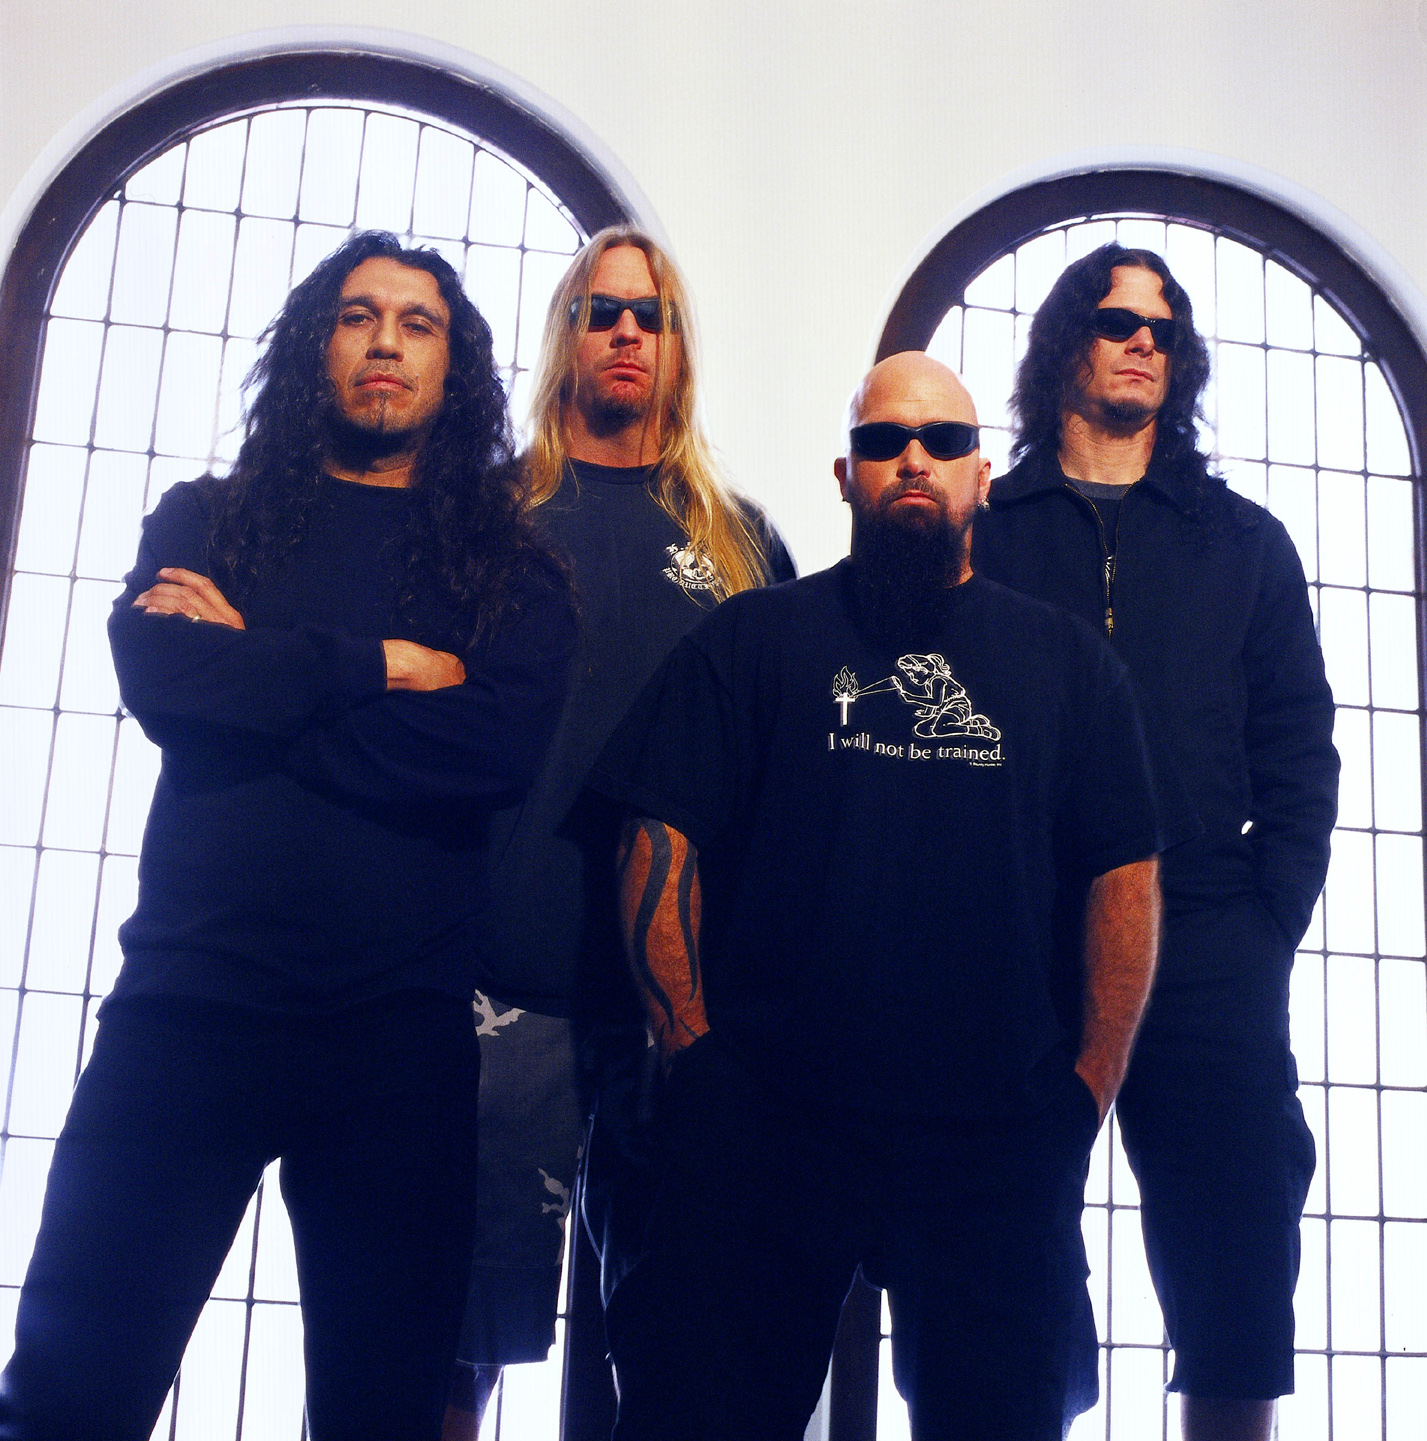 http://images.metalirium.com/news/2006/oktober/slayer.jpg